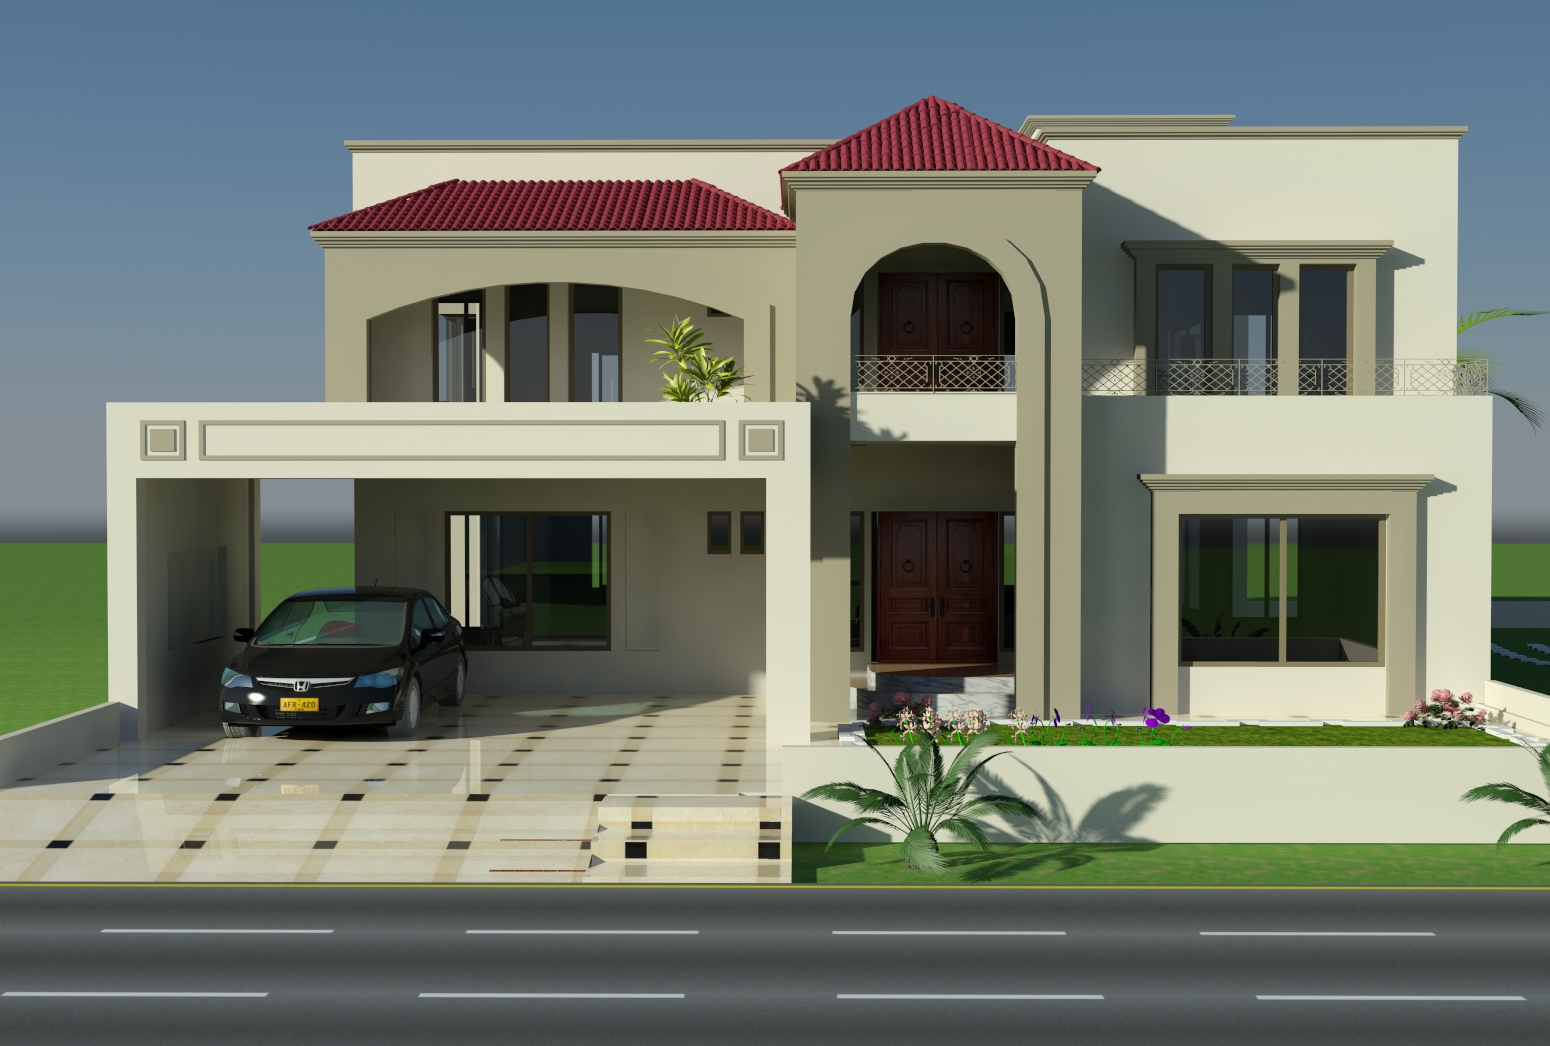 Kanal Plot House Design Europen Style In Bahria Town, Lahore, Pakistan U2026